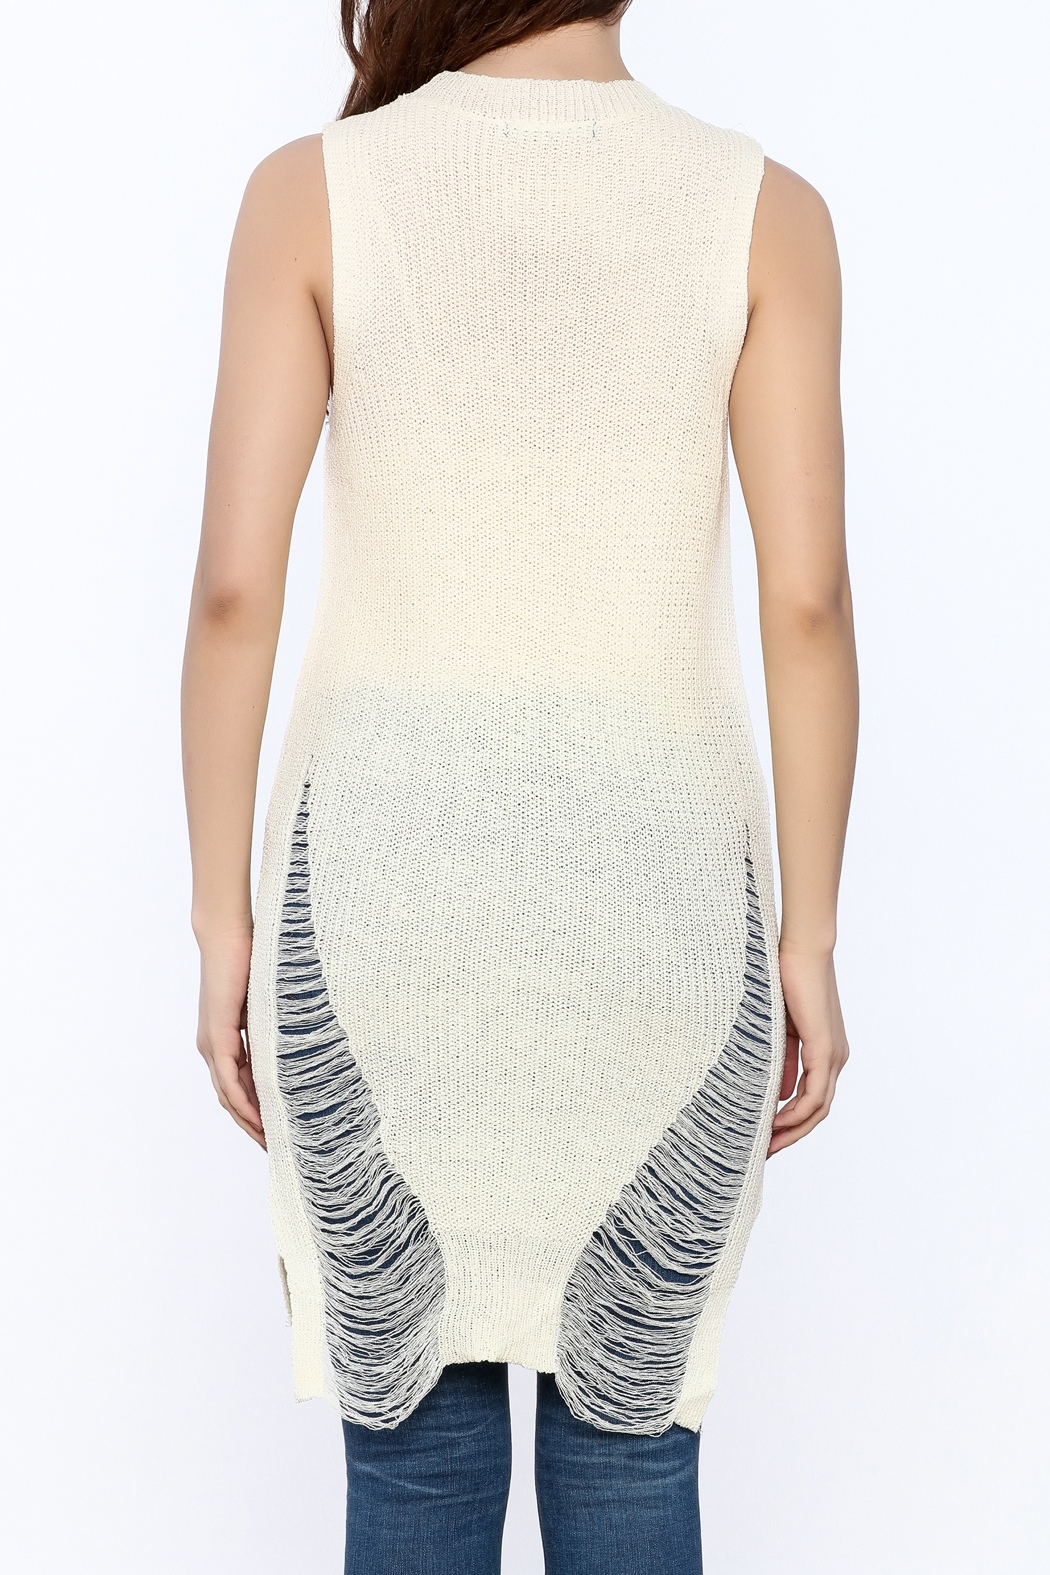 Good Time Knitted Sleeves Top - Back Cropped Image